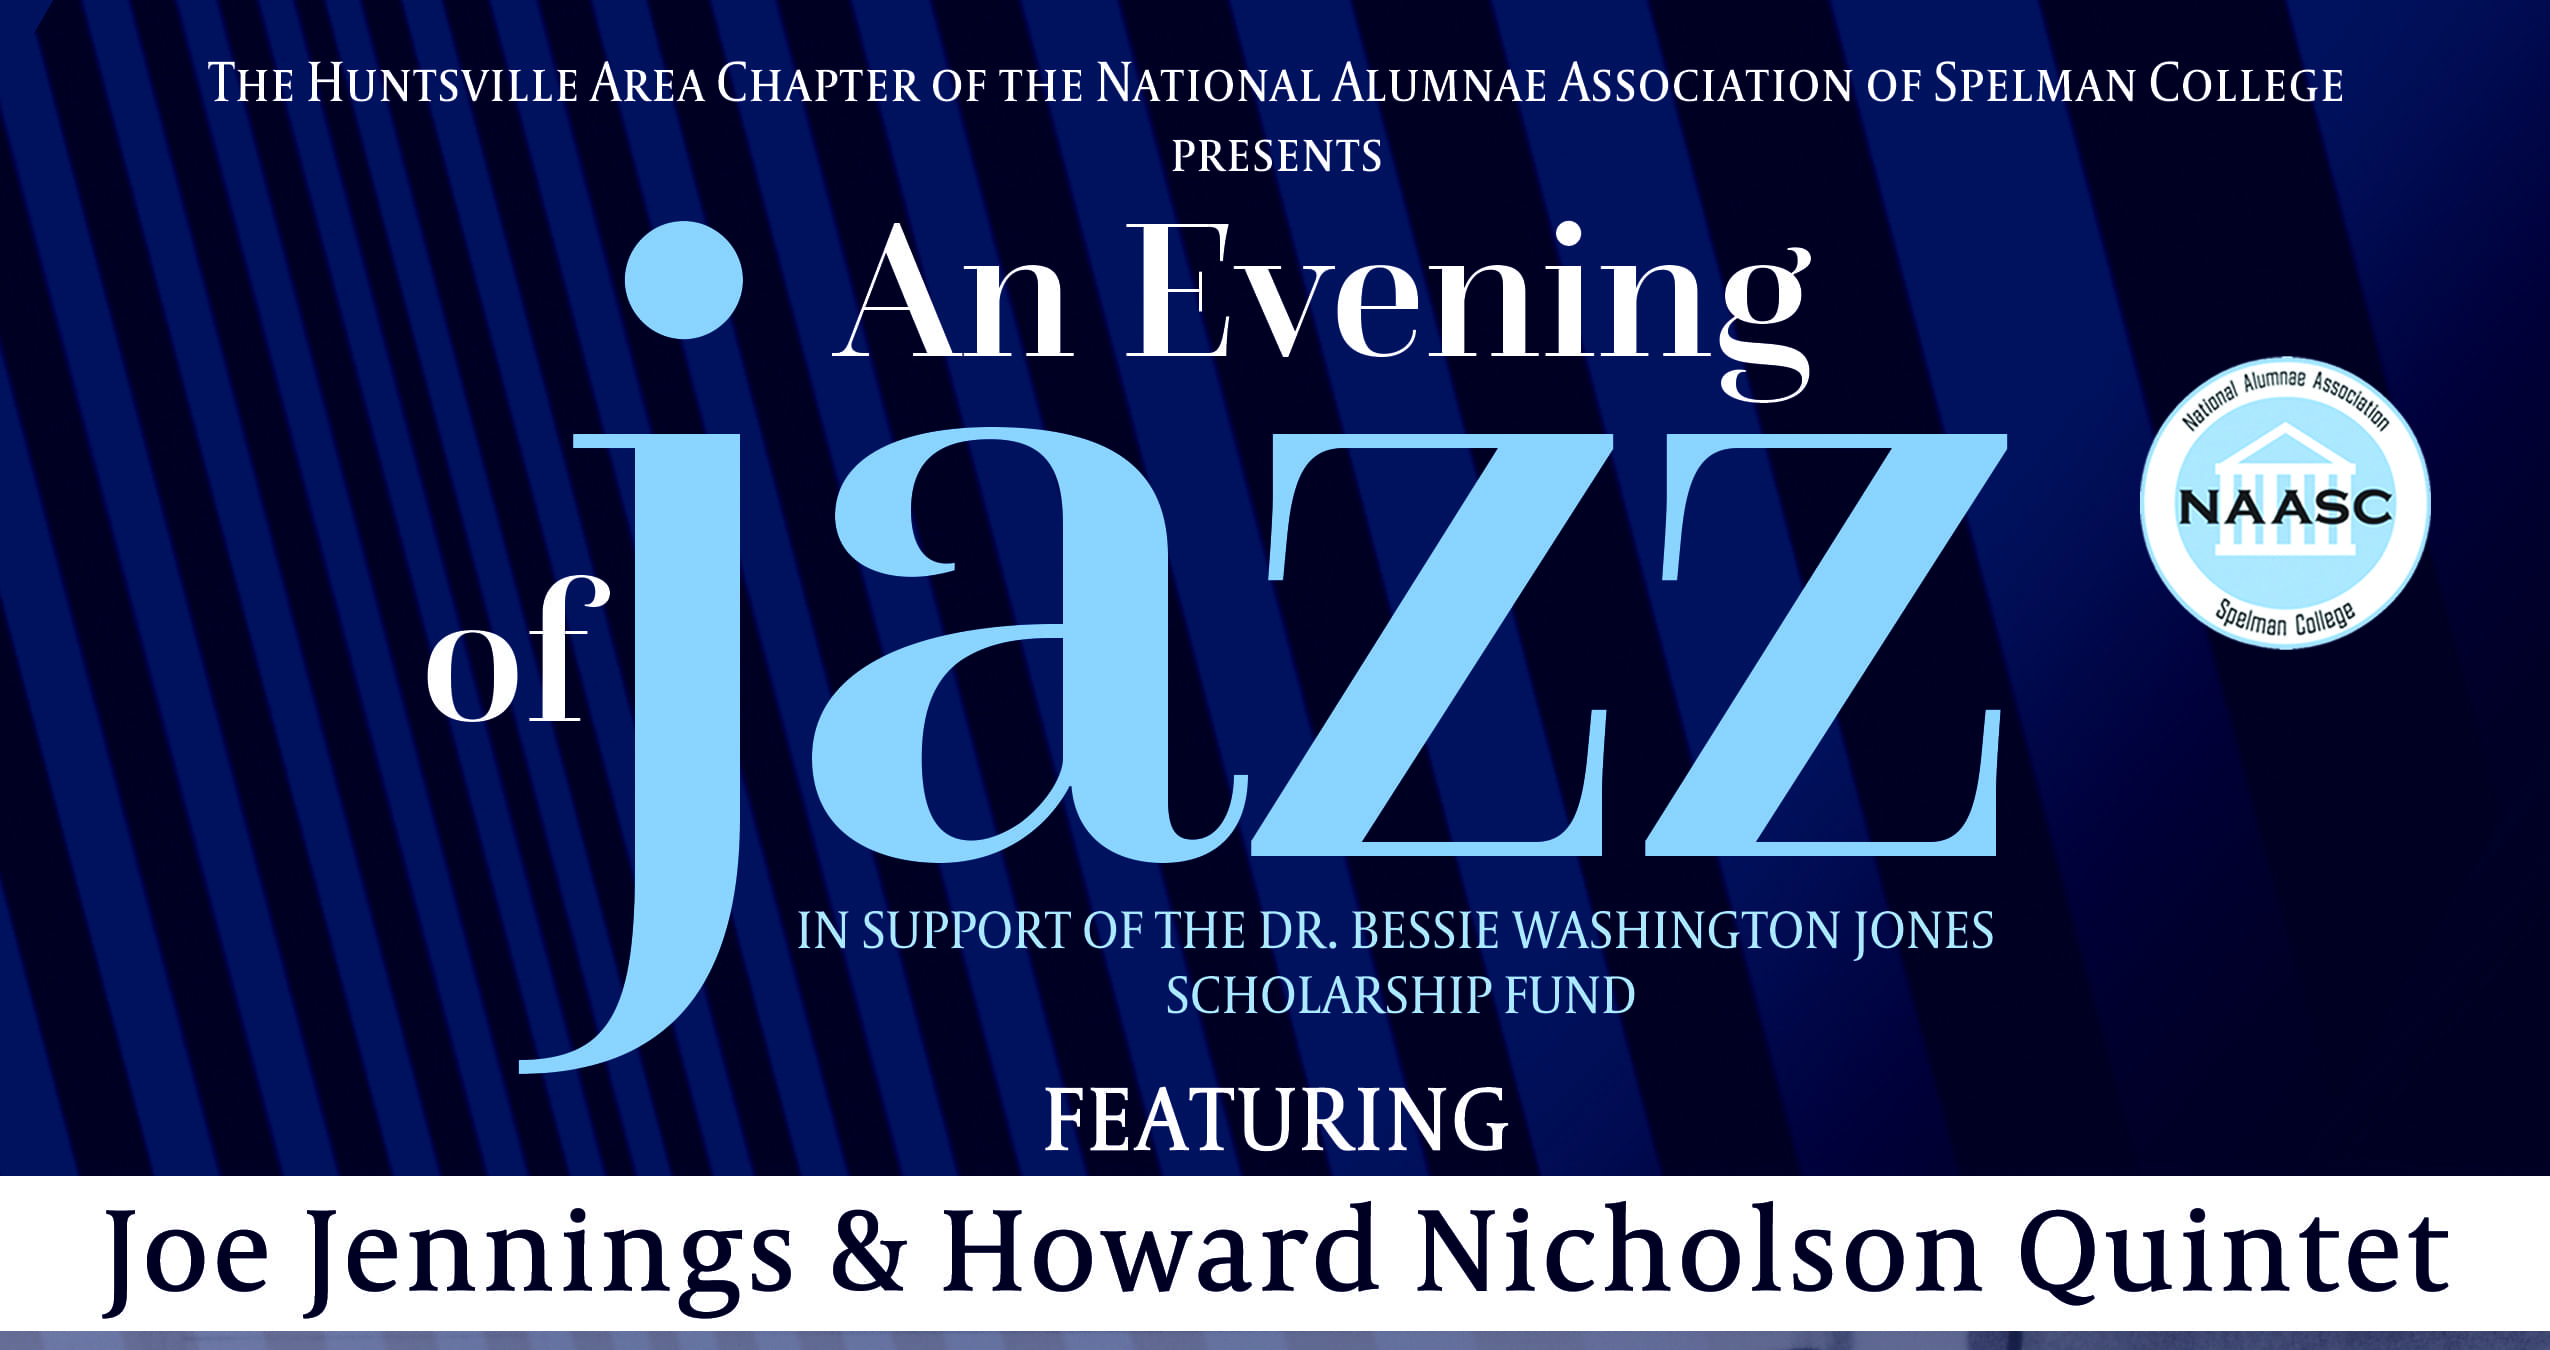 """An Evening Of Jazz"" Spelman College Alumnae Fundraiser – Saturday, March 9th!"